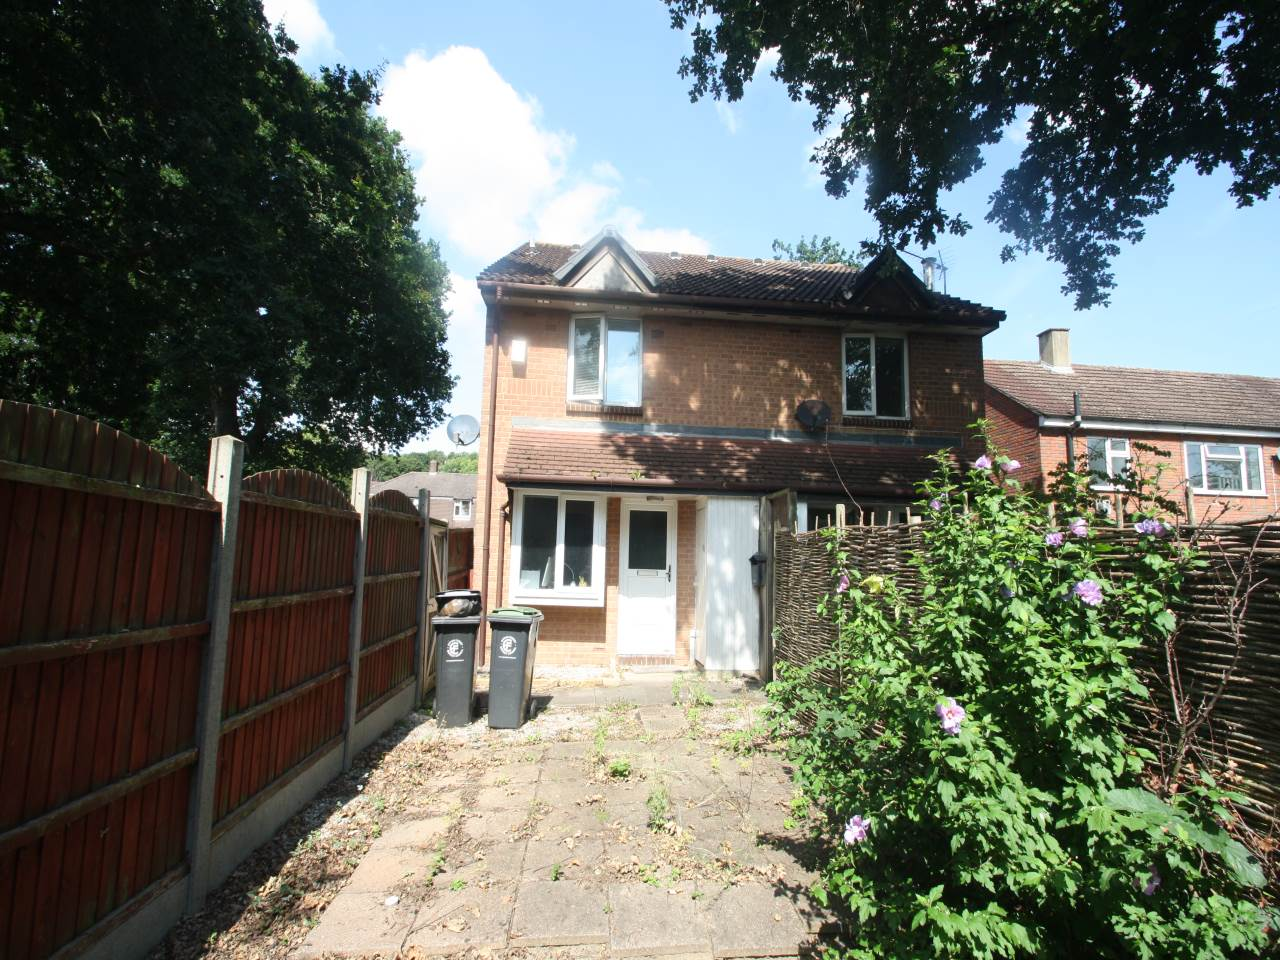 1 bed house to rent in Hereward Green, Loughton - Property Image 1